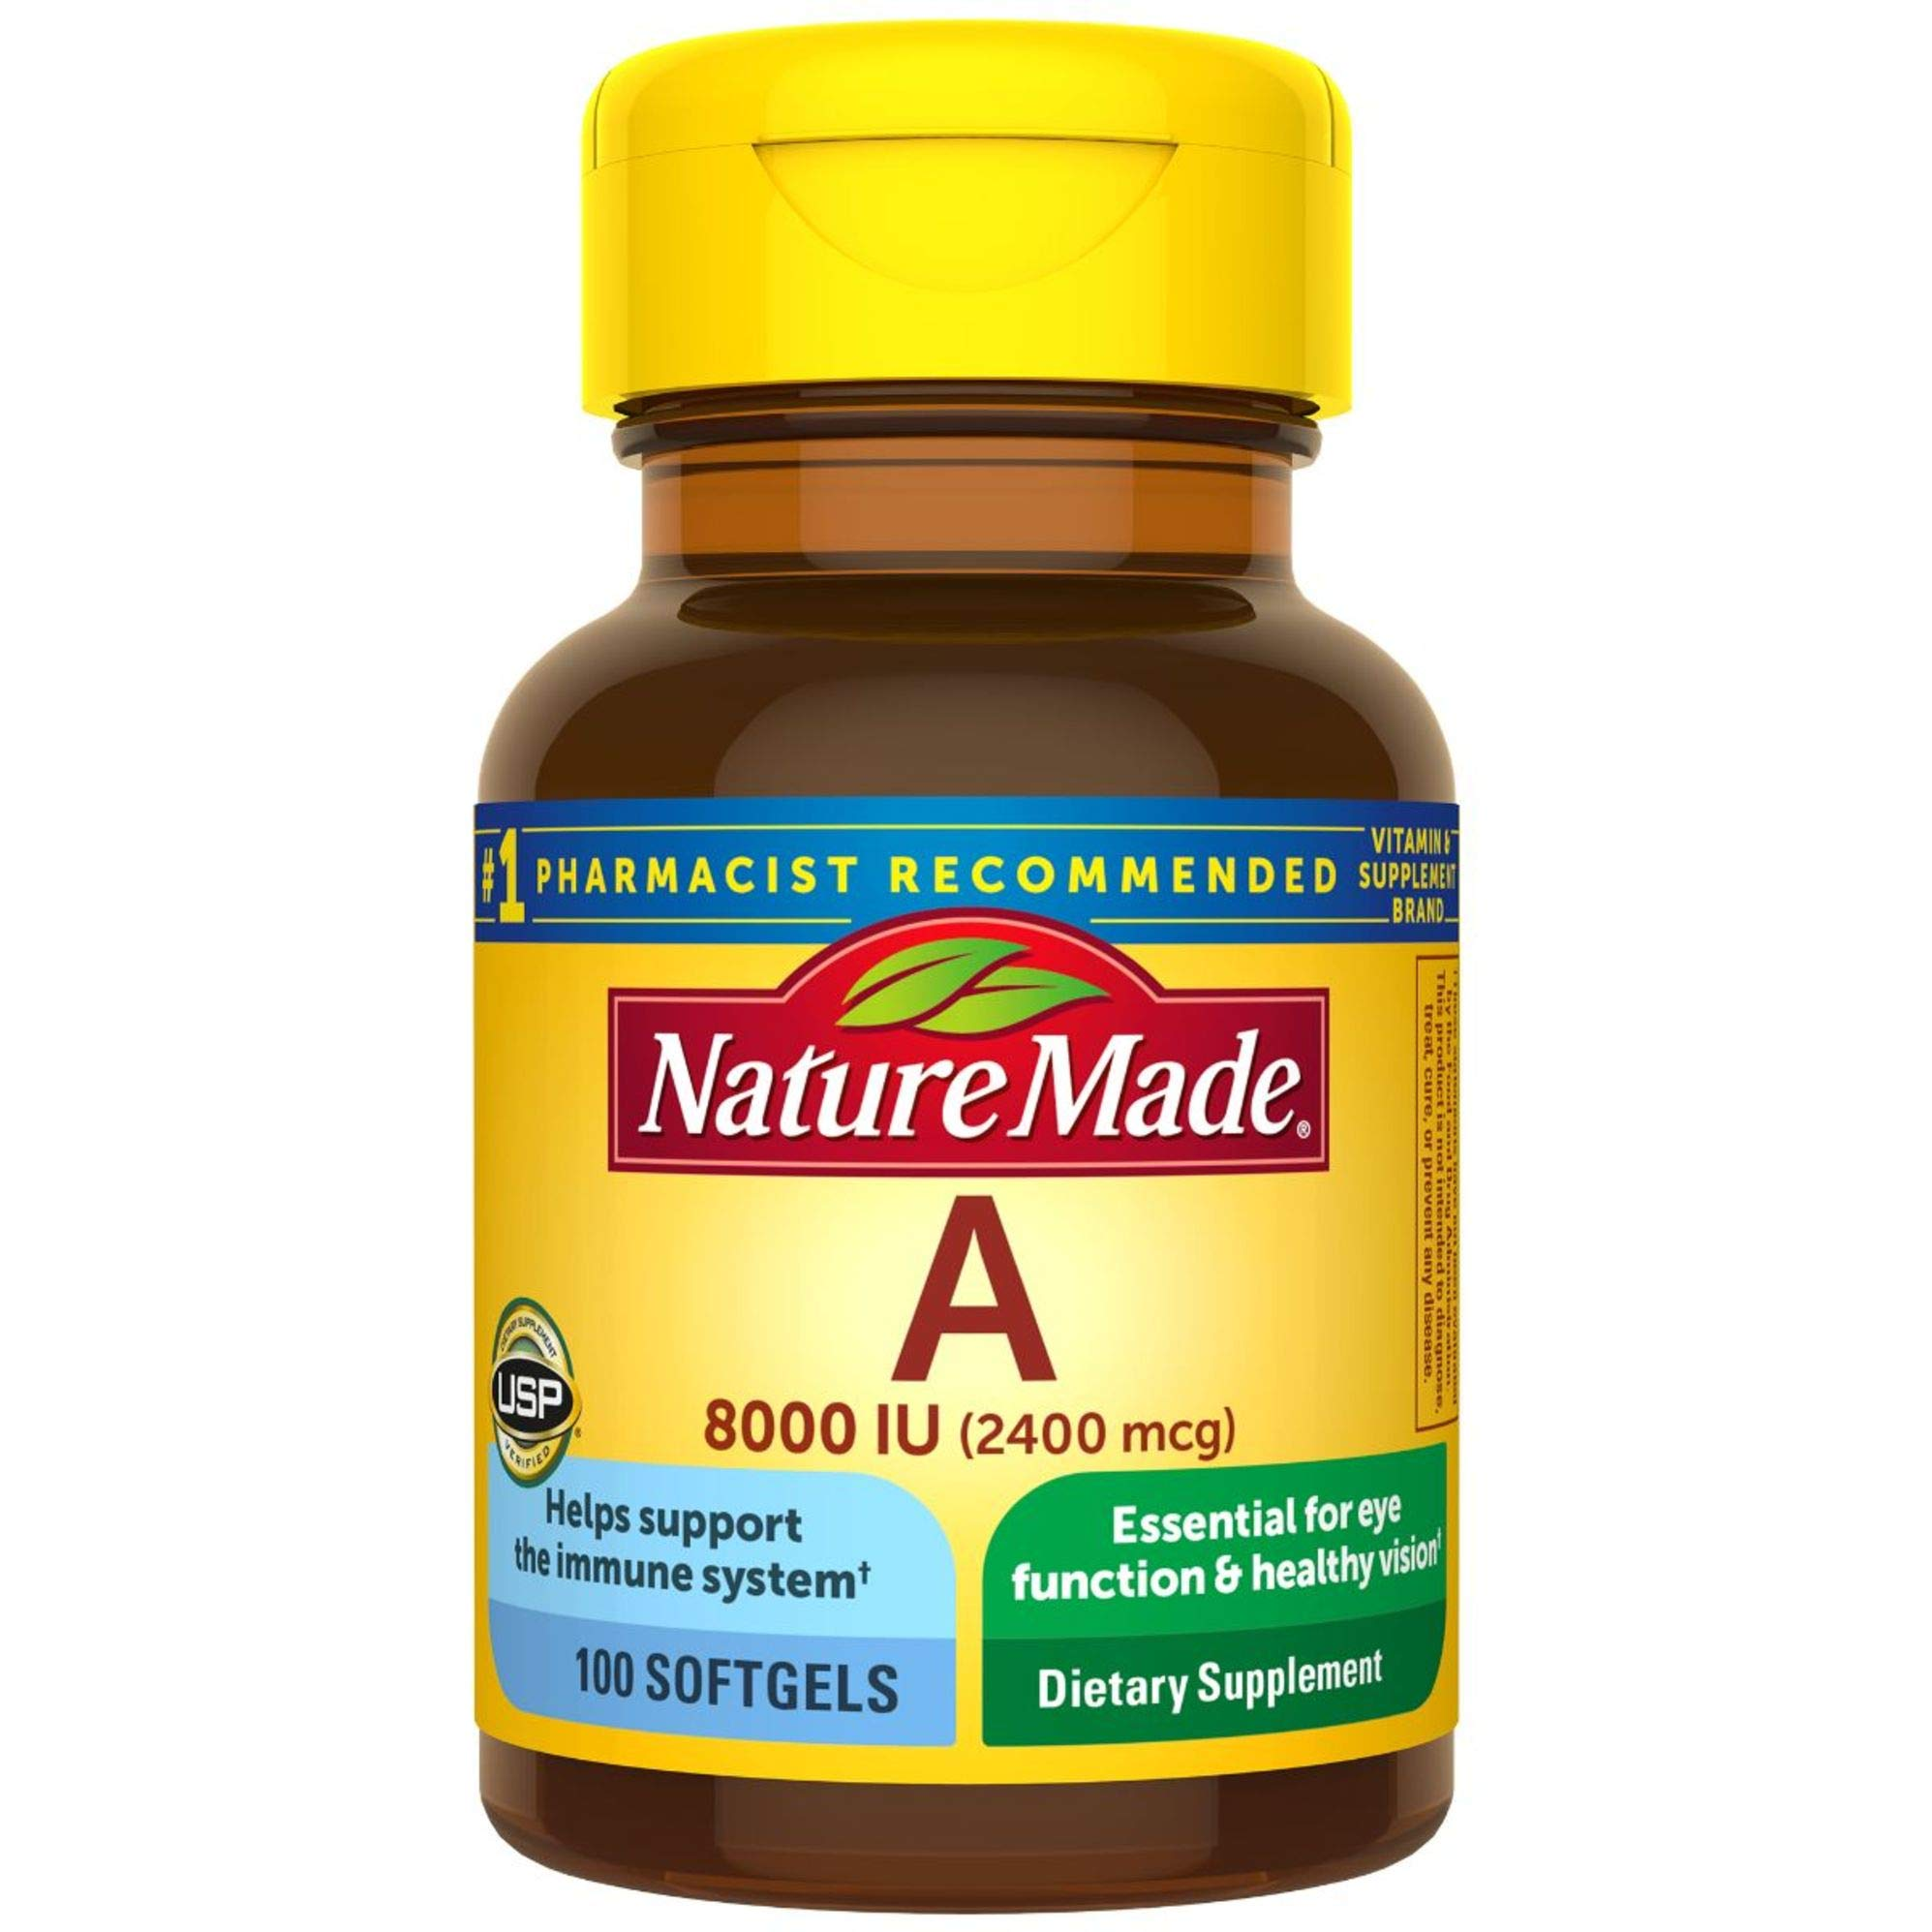 Nature Made Vitamin A 2400 mcg (8000 IU) Softgels 100 Count for Eye Health (Packaging May Vary)